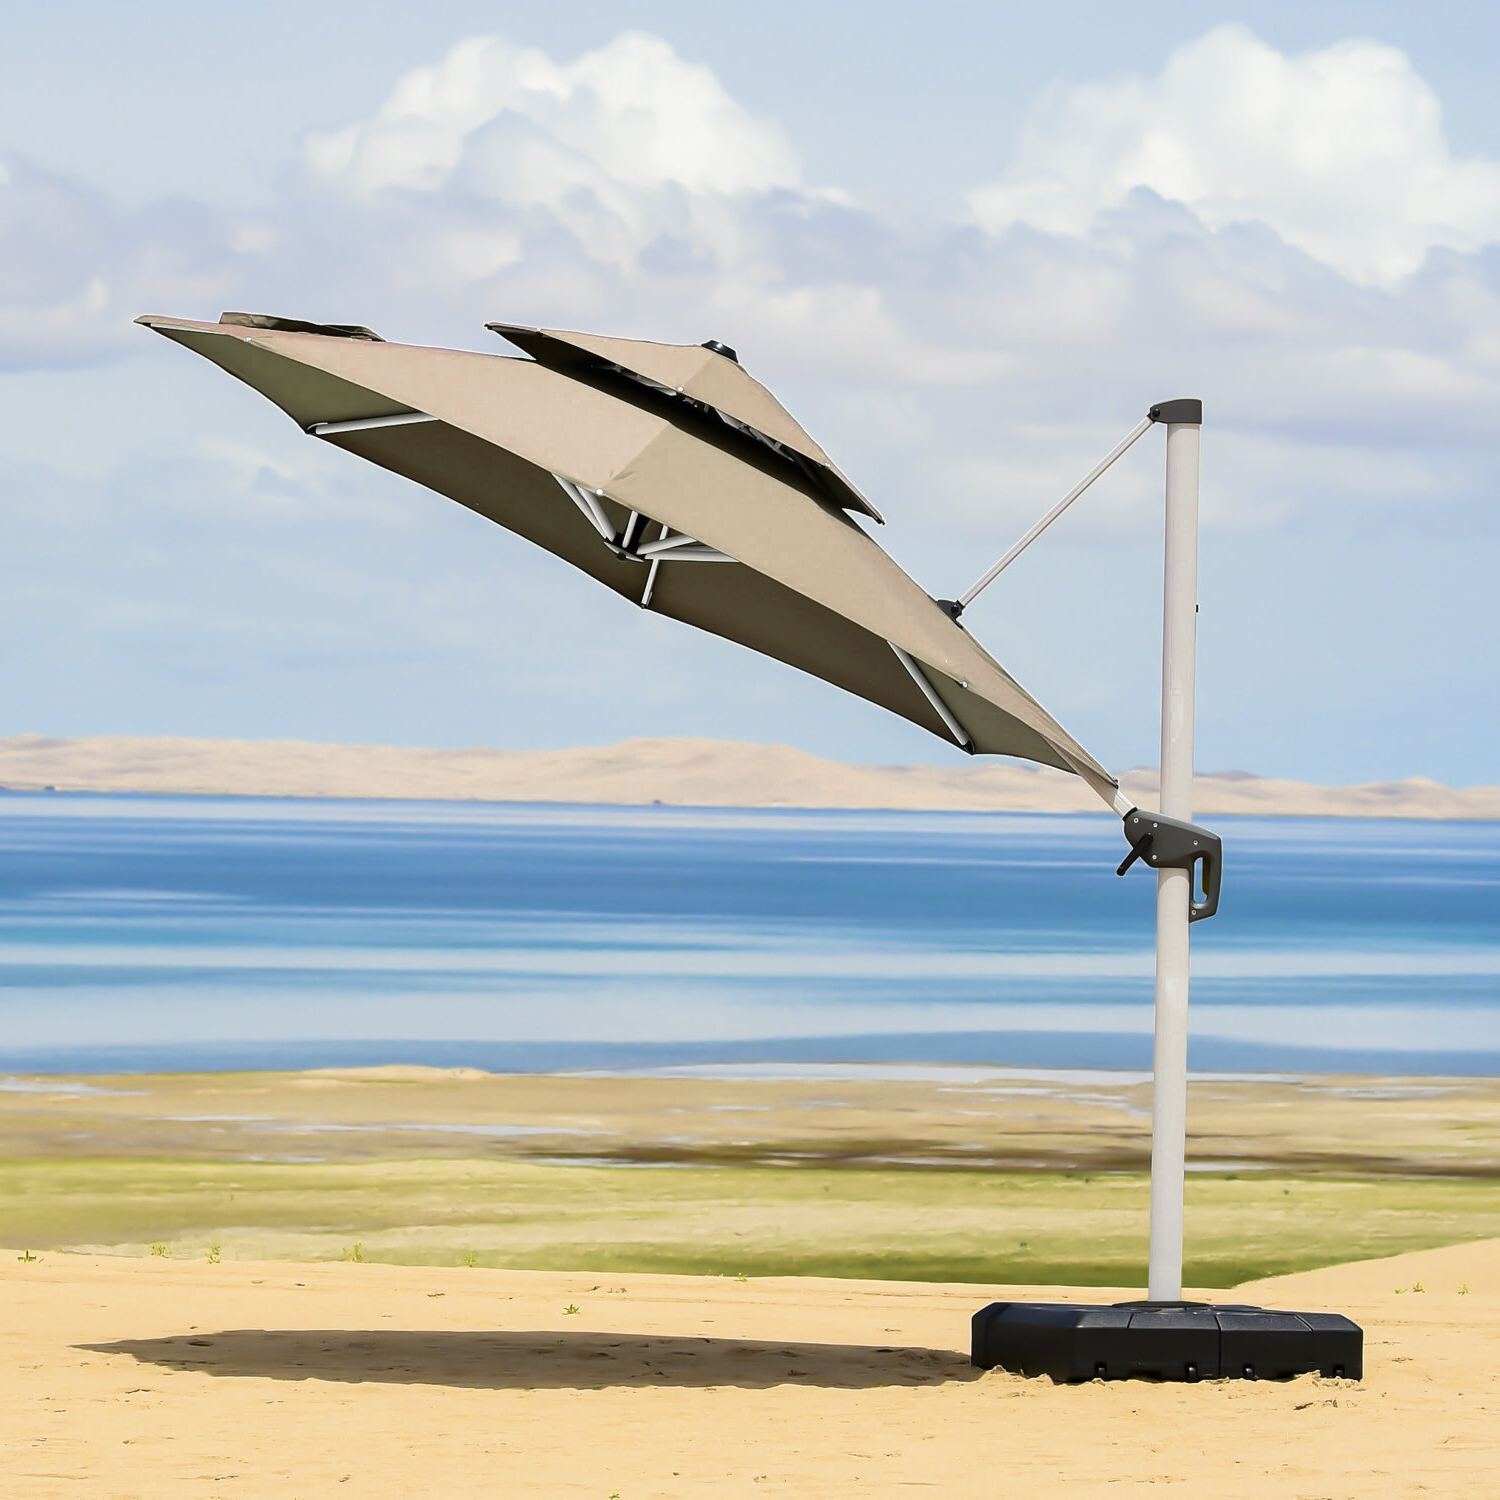 Mablethorpe 12' Cantilever Umbrella With Regard To Most Current Mablethorpe Cantilever Umbrellas (Gallery 1 of 20)